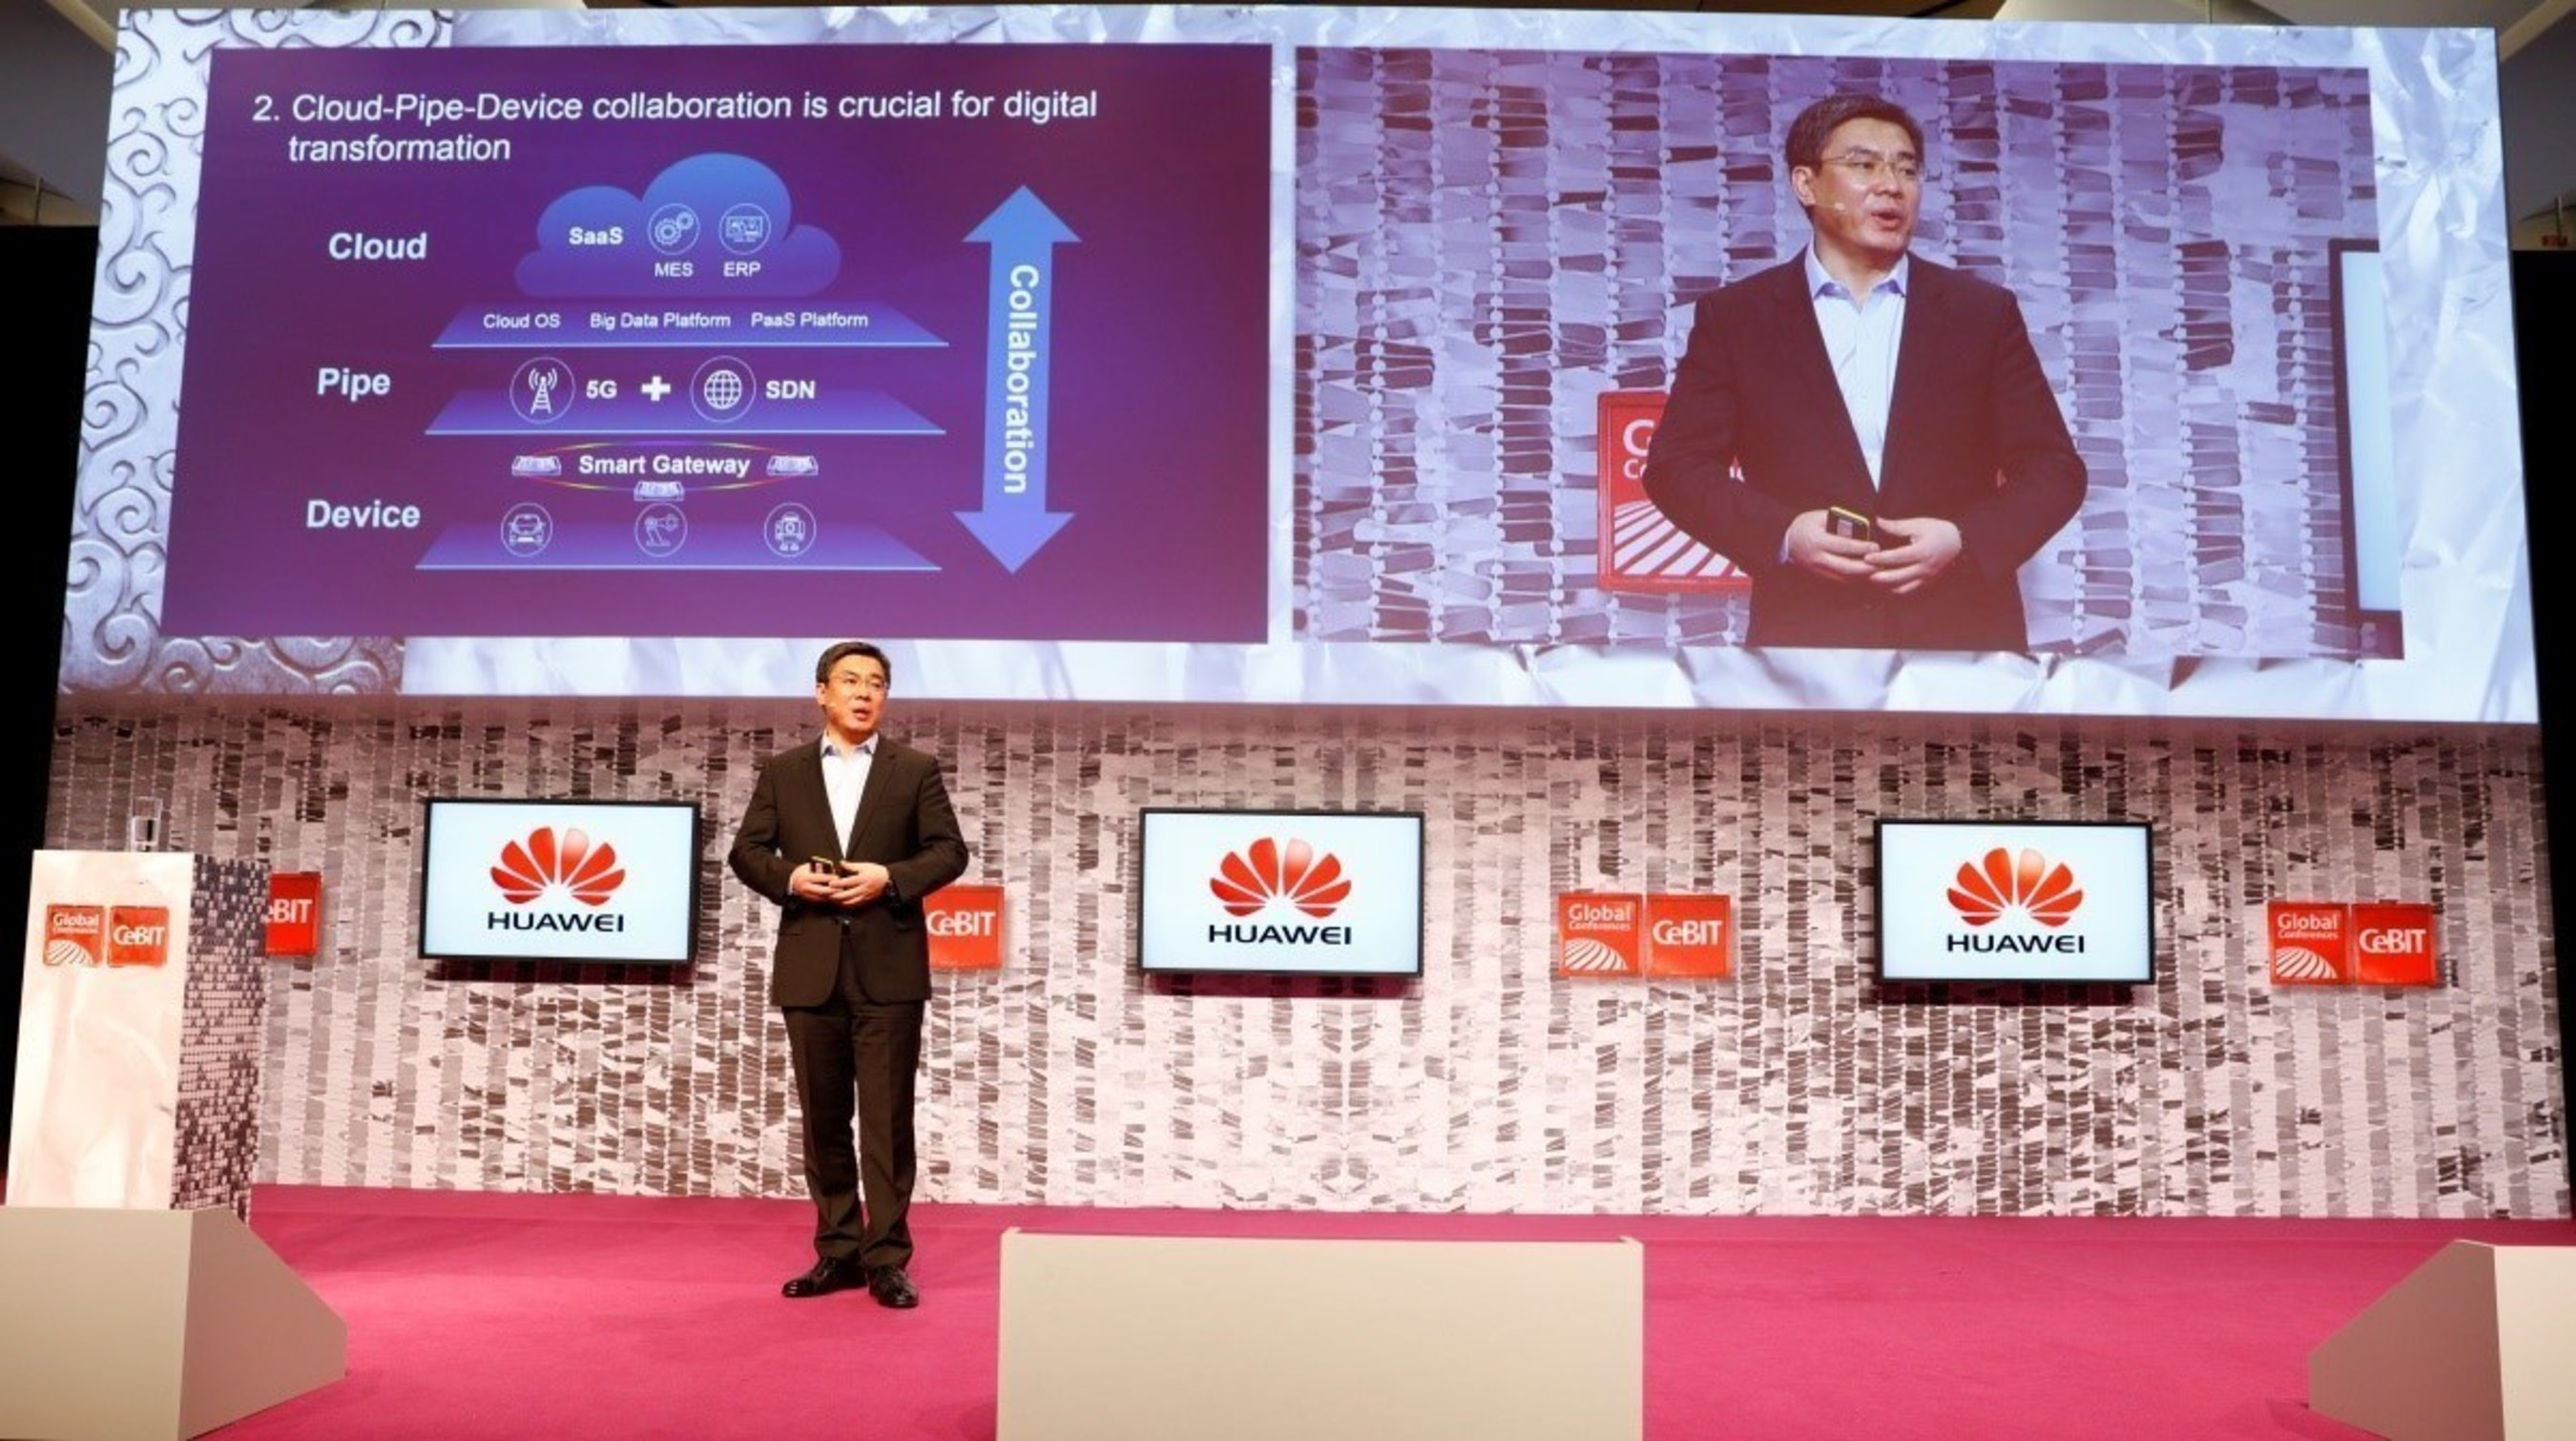 Yan Lida, President of Huawei Enterprise Business Group, delivered a keynote speech at the CeBIT 2016 Global ...